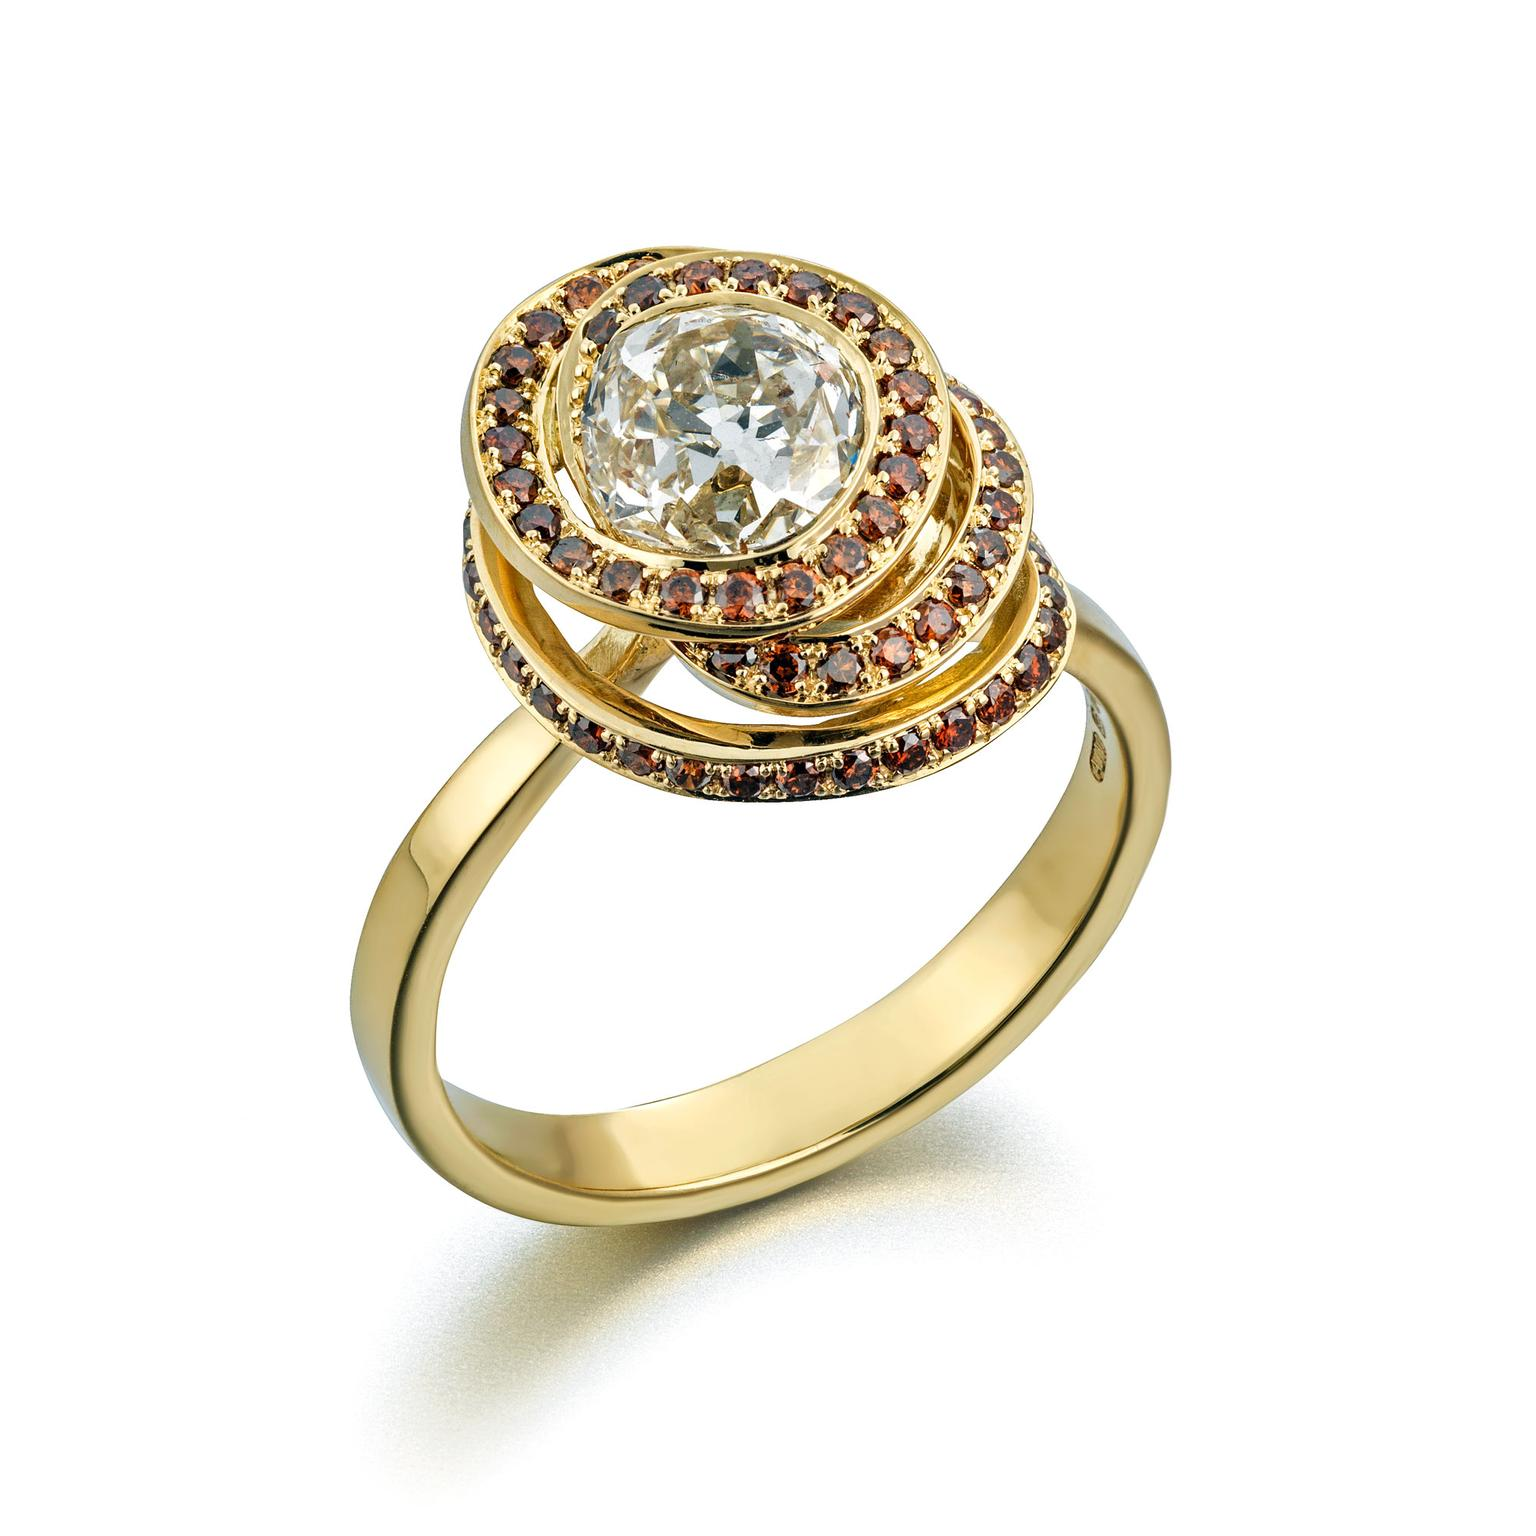 Amanda Mansell 18ct gold ring with cognac diamonds